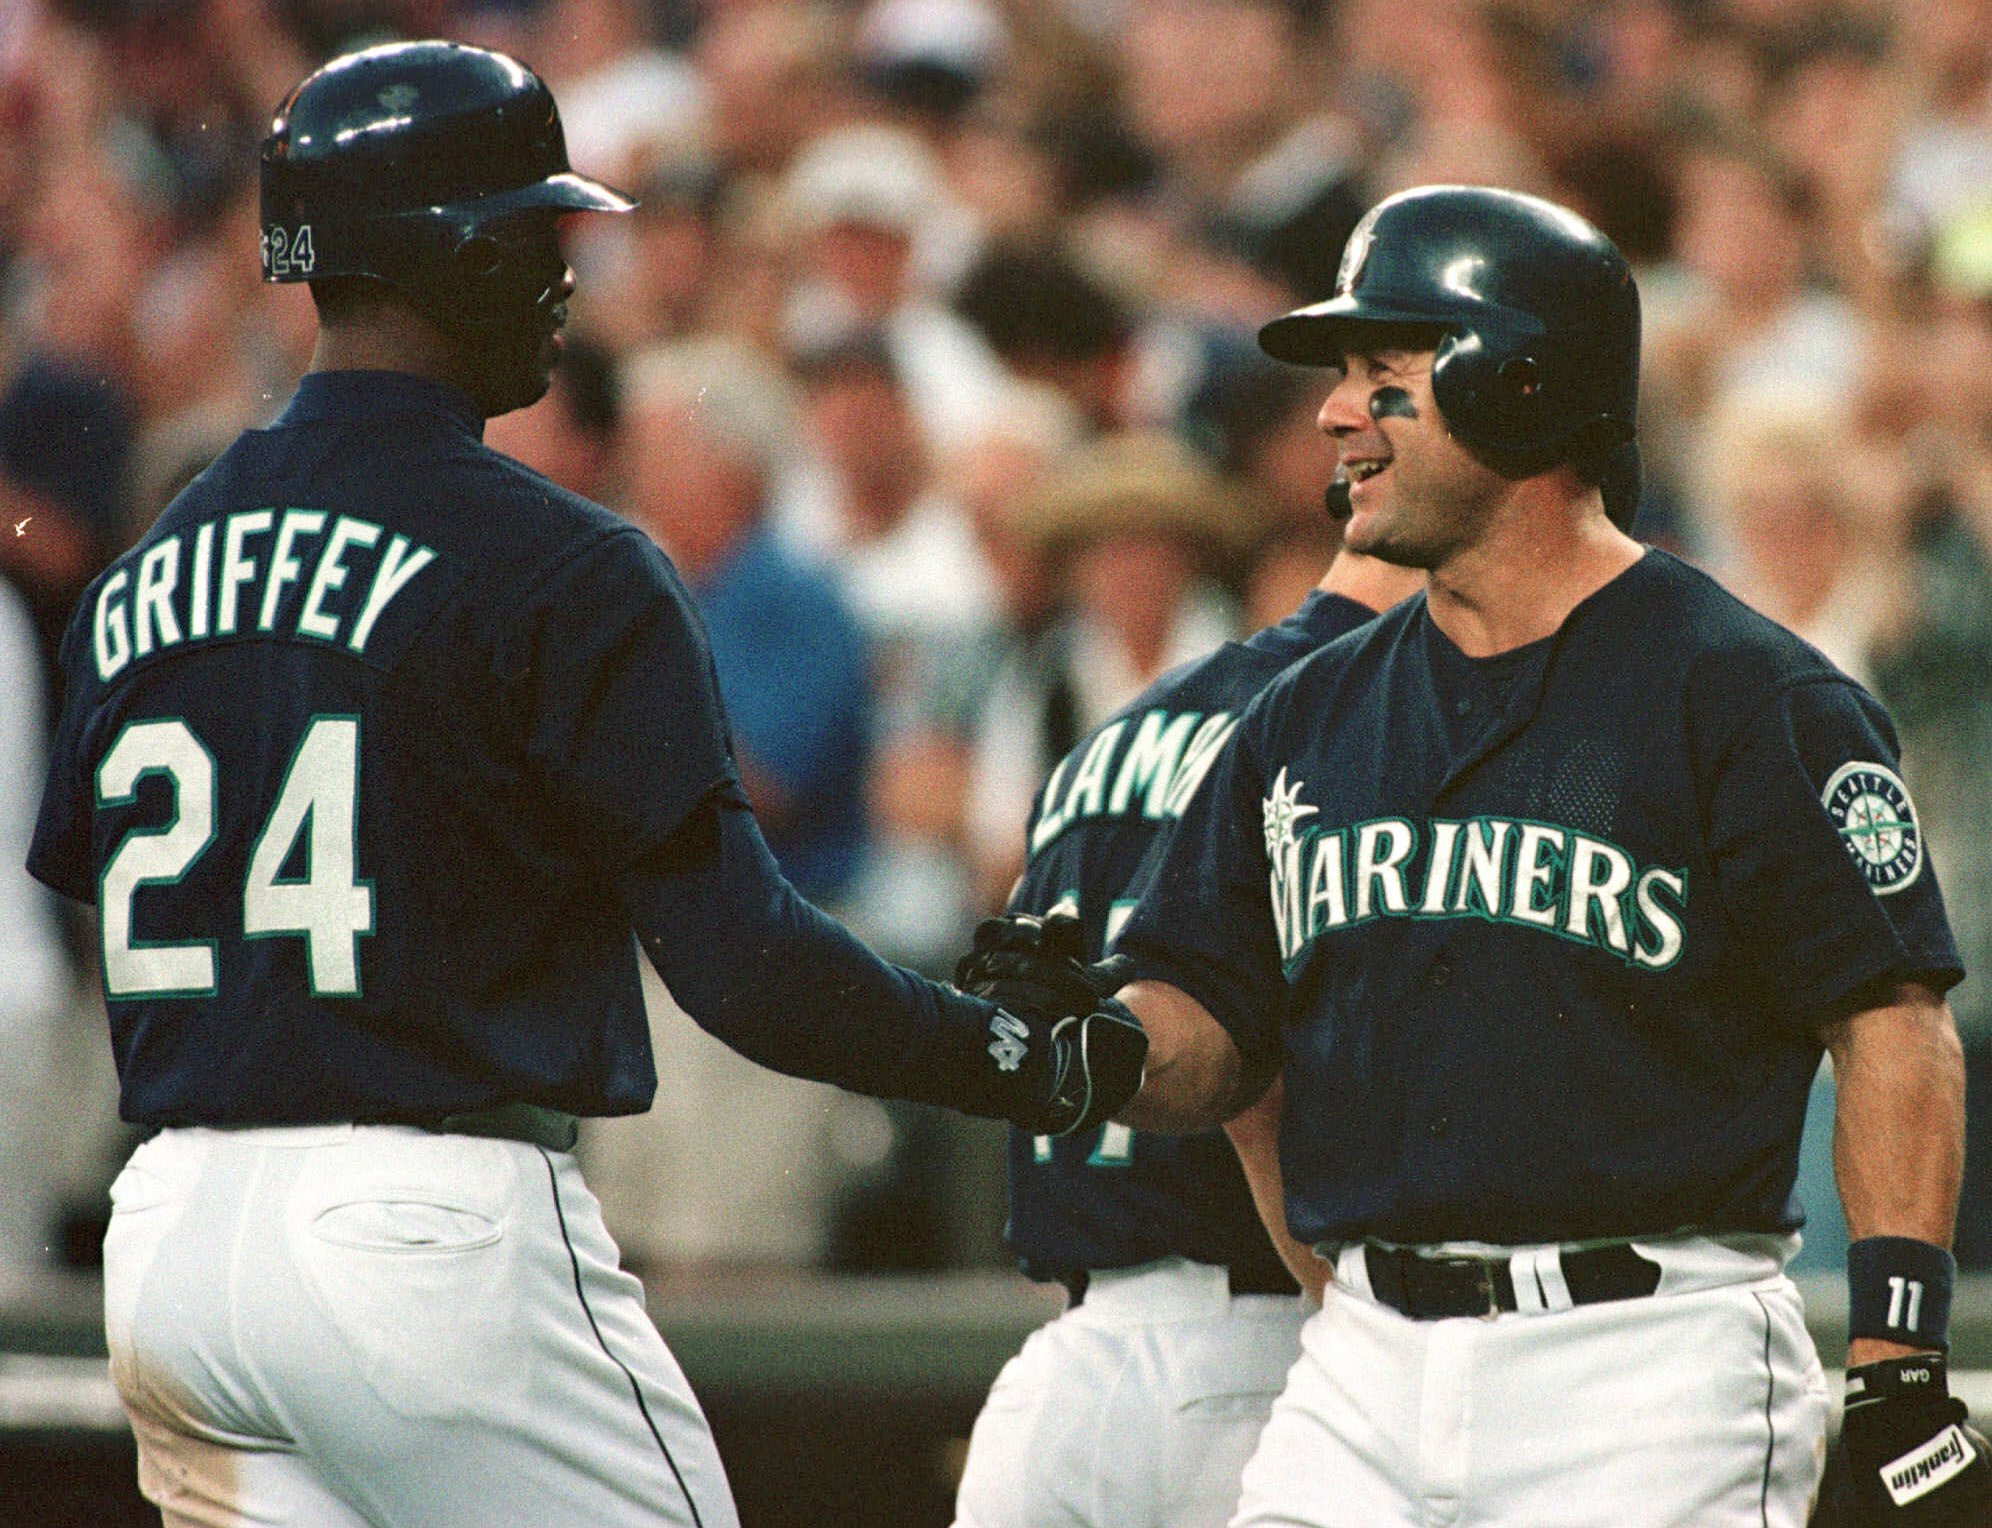 GRIFFEY MARTINEZ Seattle Mariners' Ken Griffey Jr. is congratulated by Edgar Martinez after hitting a two-run homer in the 8th inning against the Cleveland Indians in Seattle . The Indians won 7-4 in 10 innings INDIANS MARINERS, SEATTLE, USA